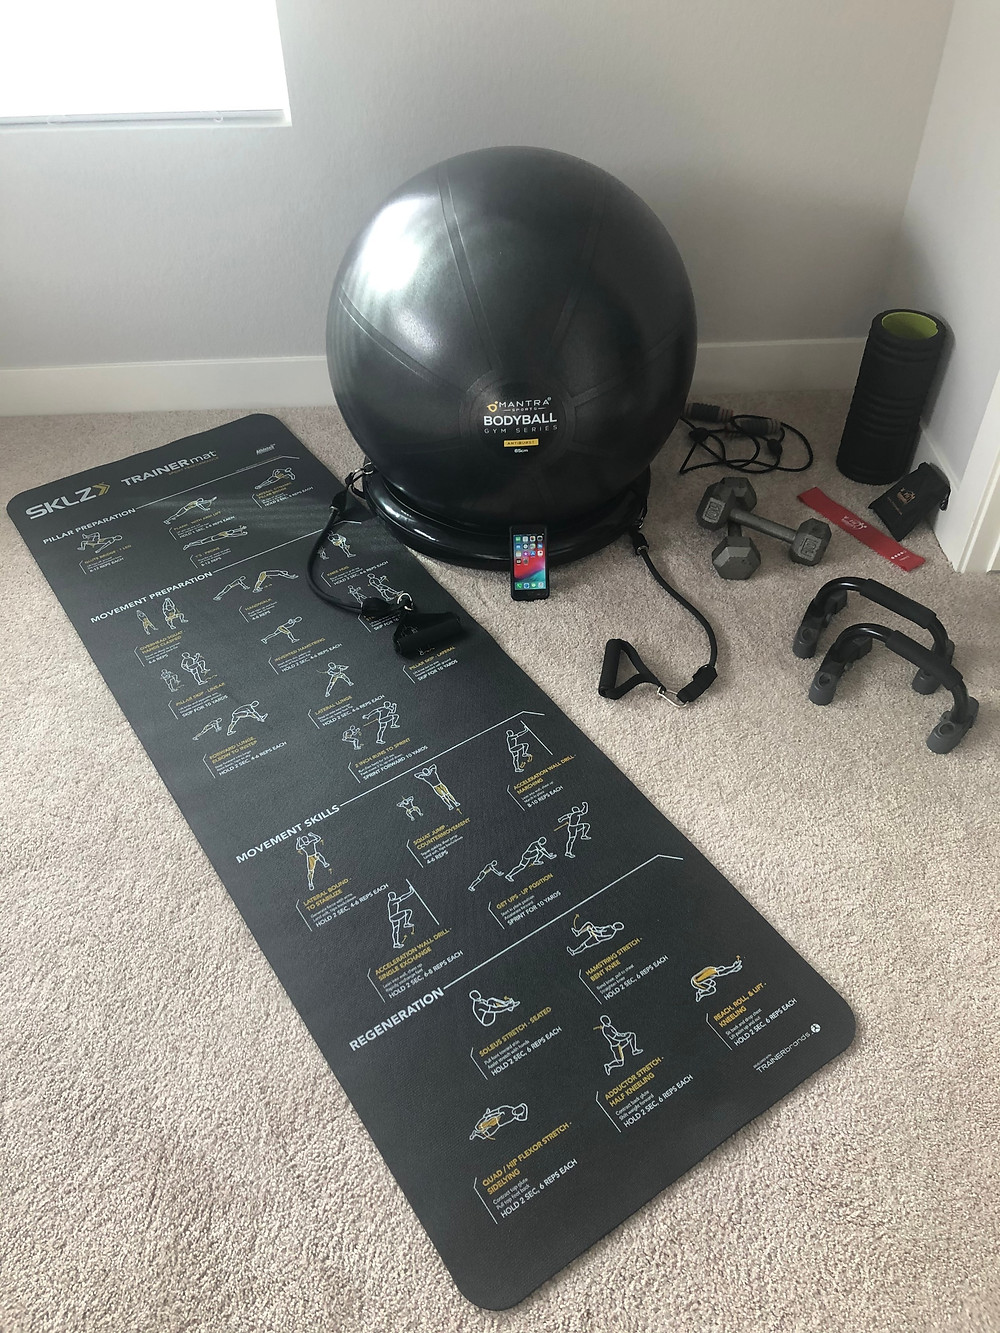 Photo shows fitness ball, exercise mat, and various weights in a corner of the writer's living room